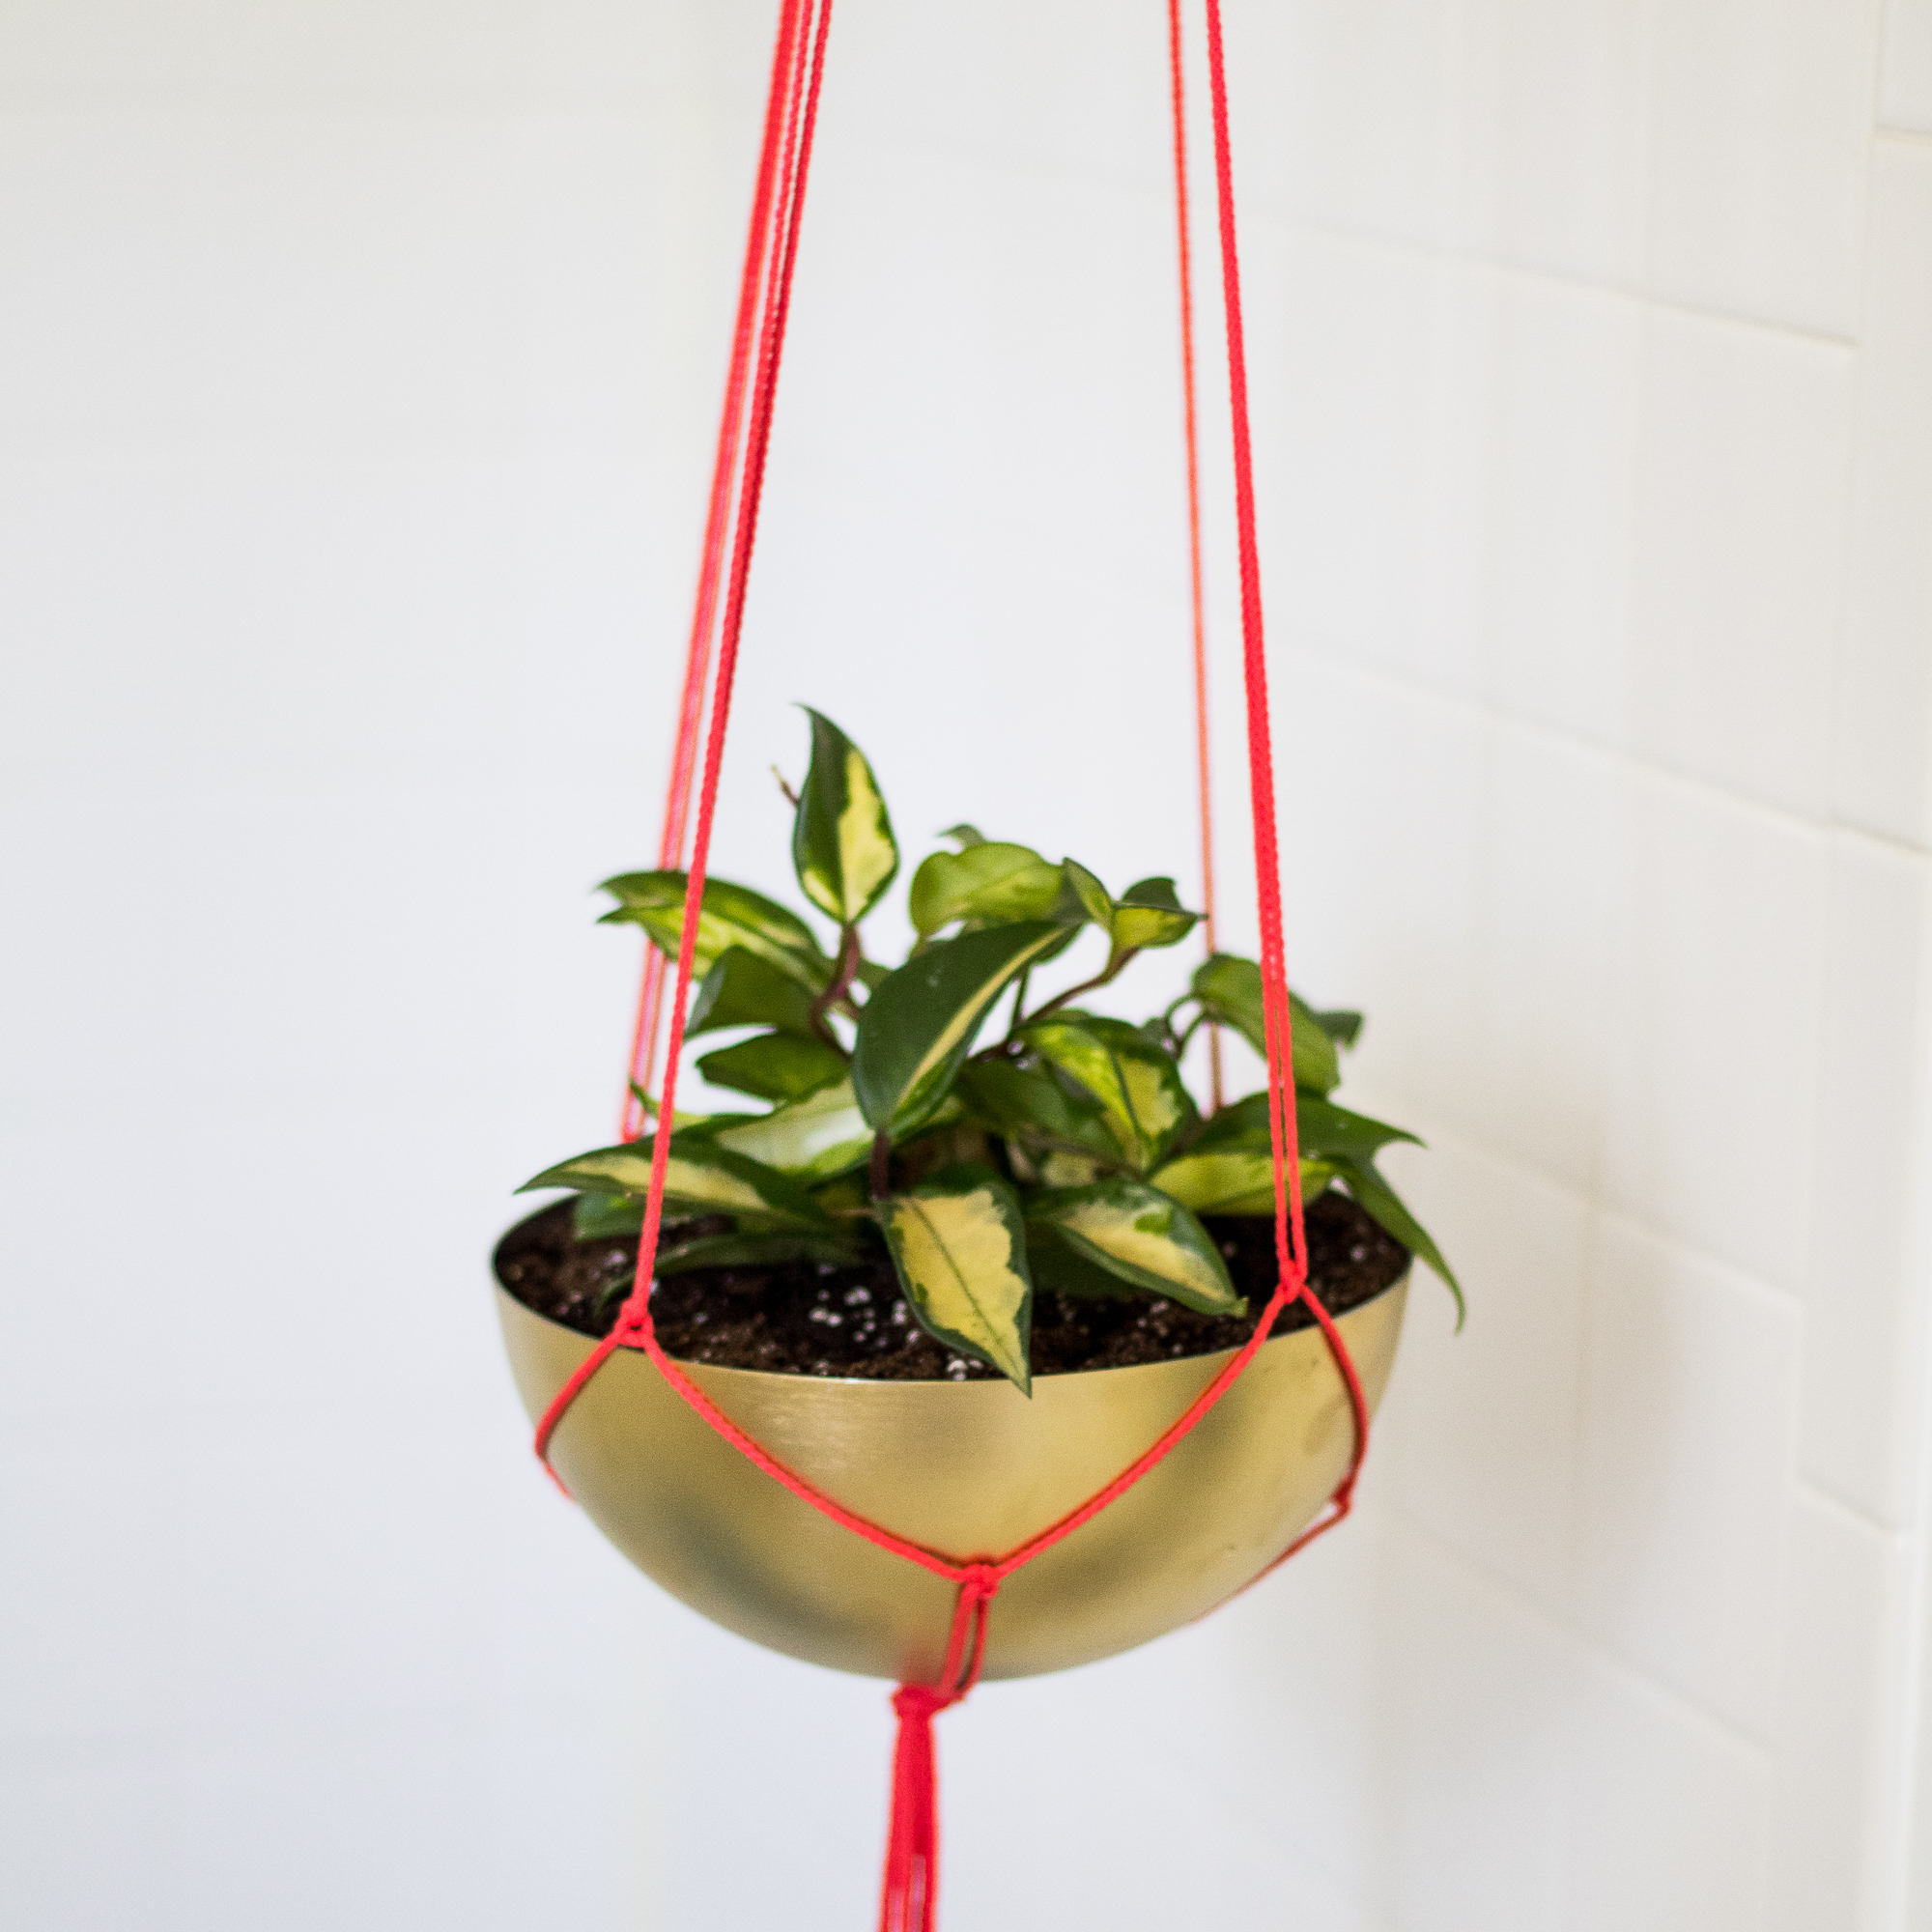 Hangplant Ikea Diy Brass Hanging Planter The Easiest Ikea Hack Ever